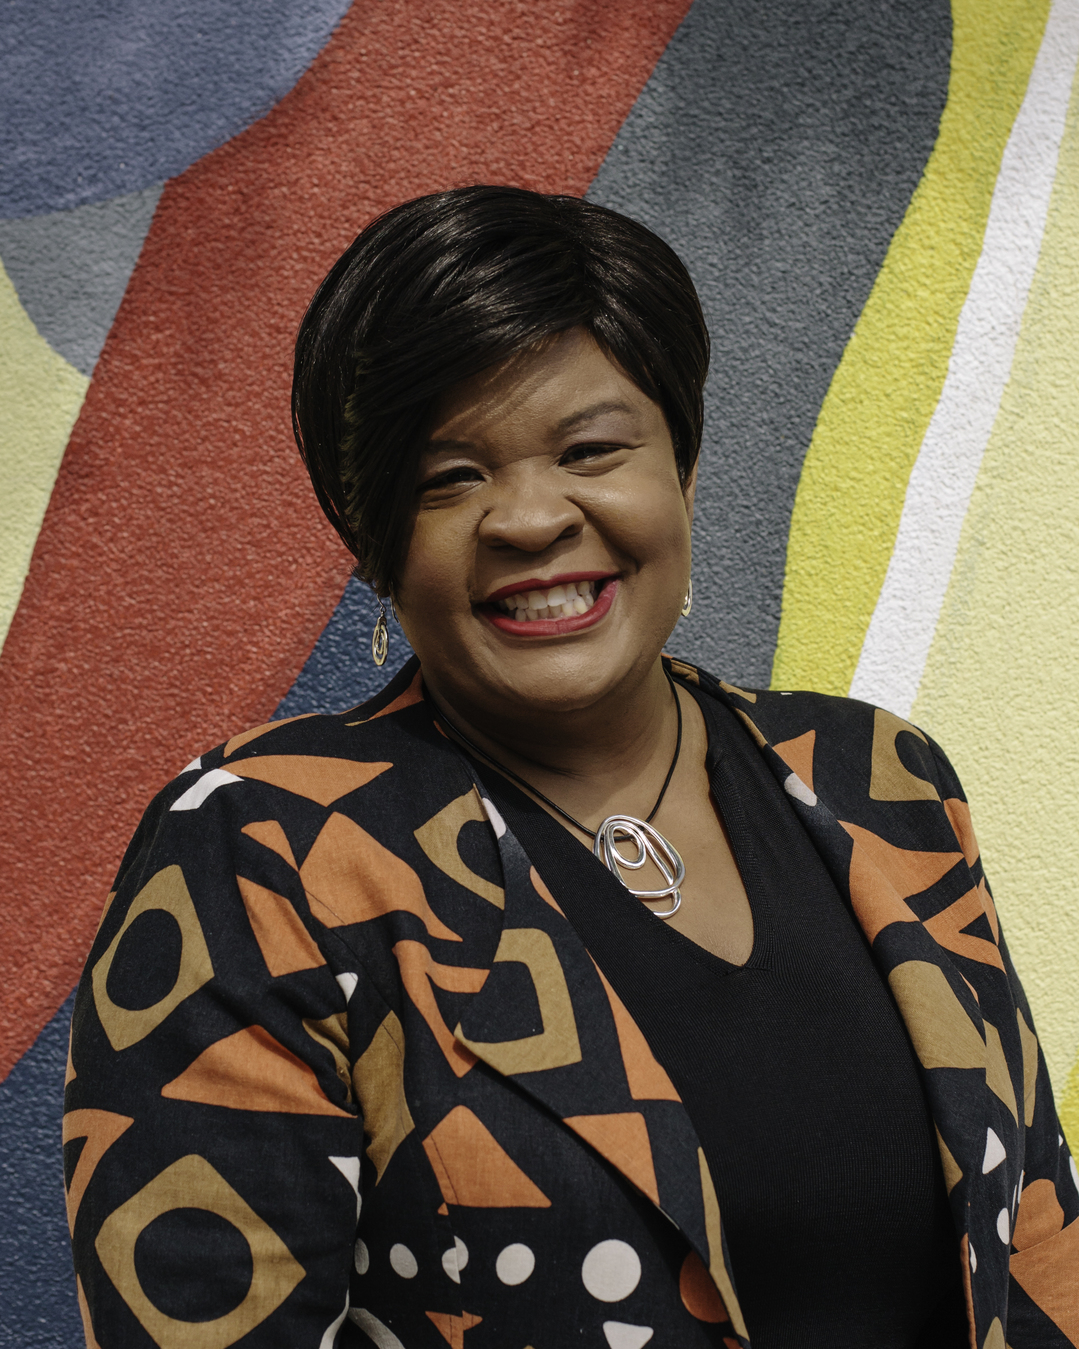 Image of a black woman with straight short black hair standing in front of a colorful backdrop, smiling and wearing a geometric patterned jacket.